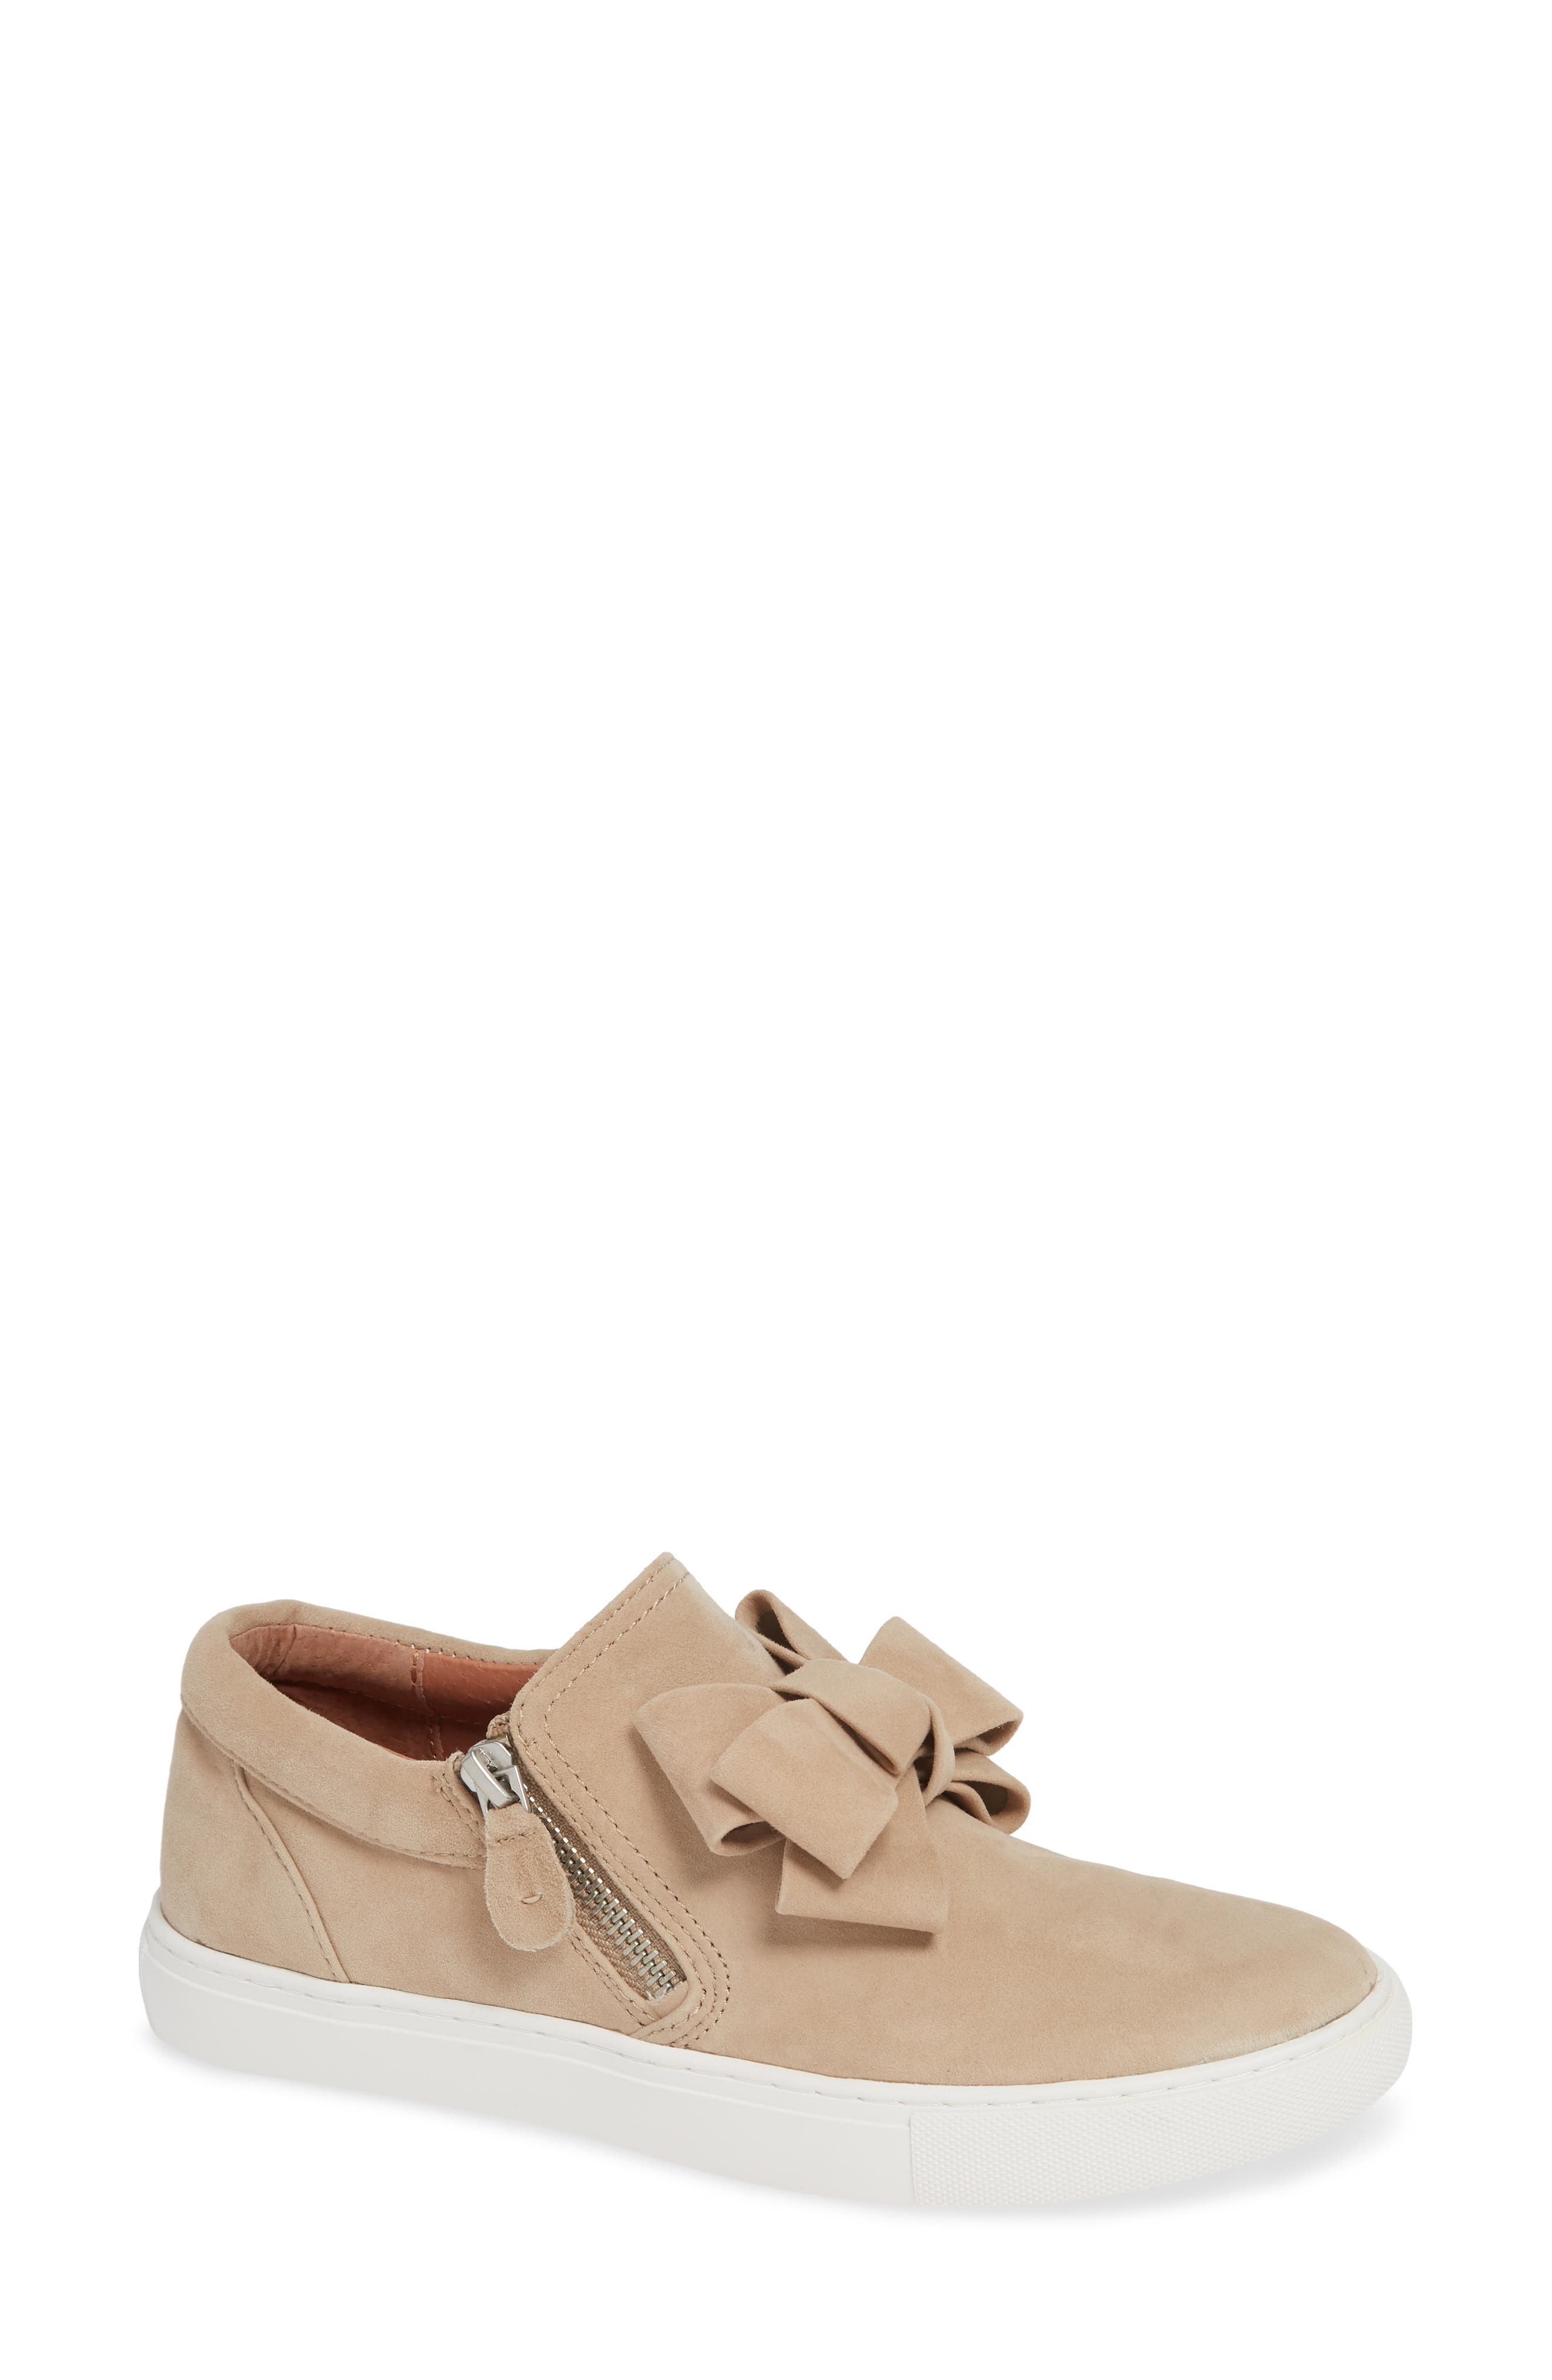 GENTLE SOULS BY KENNETH COLE, Lowe Bow Sneaker, Main thumbnail 1, color, CAFE SUEDE